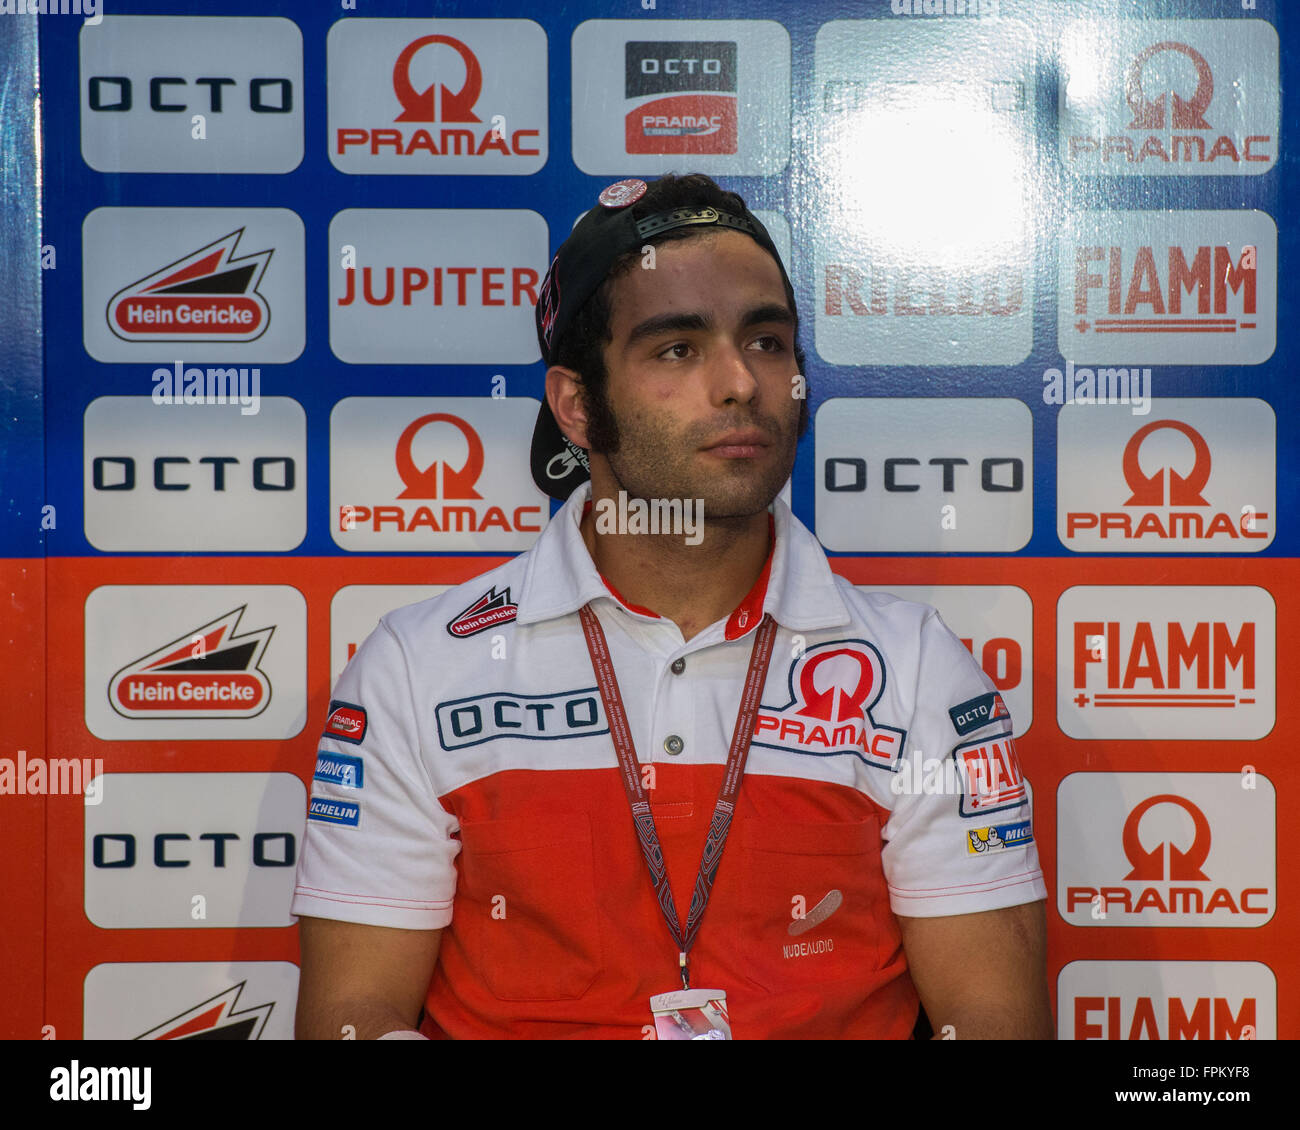 Losail International Circuit, Qatar.  19th March 2016.  Danilo Petrucci  during qualifying for the MotoGP race for - Stock Image